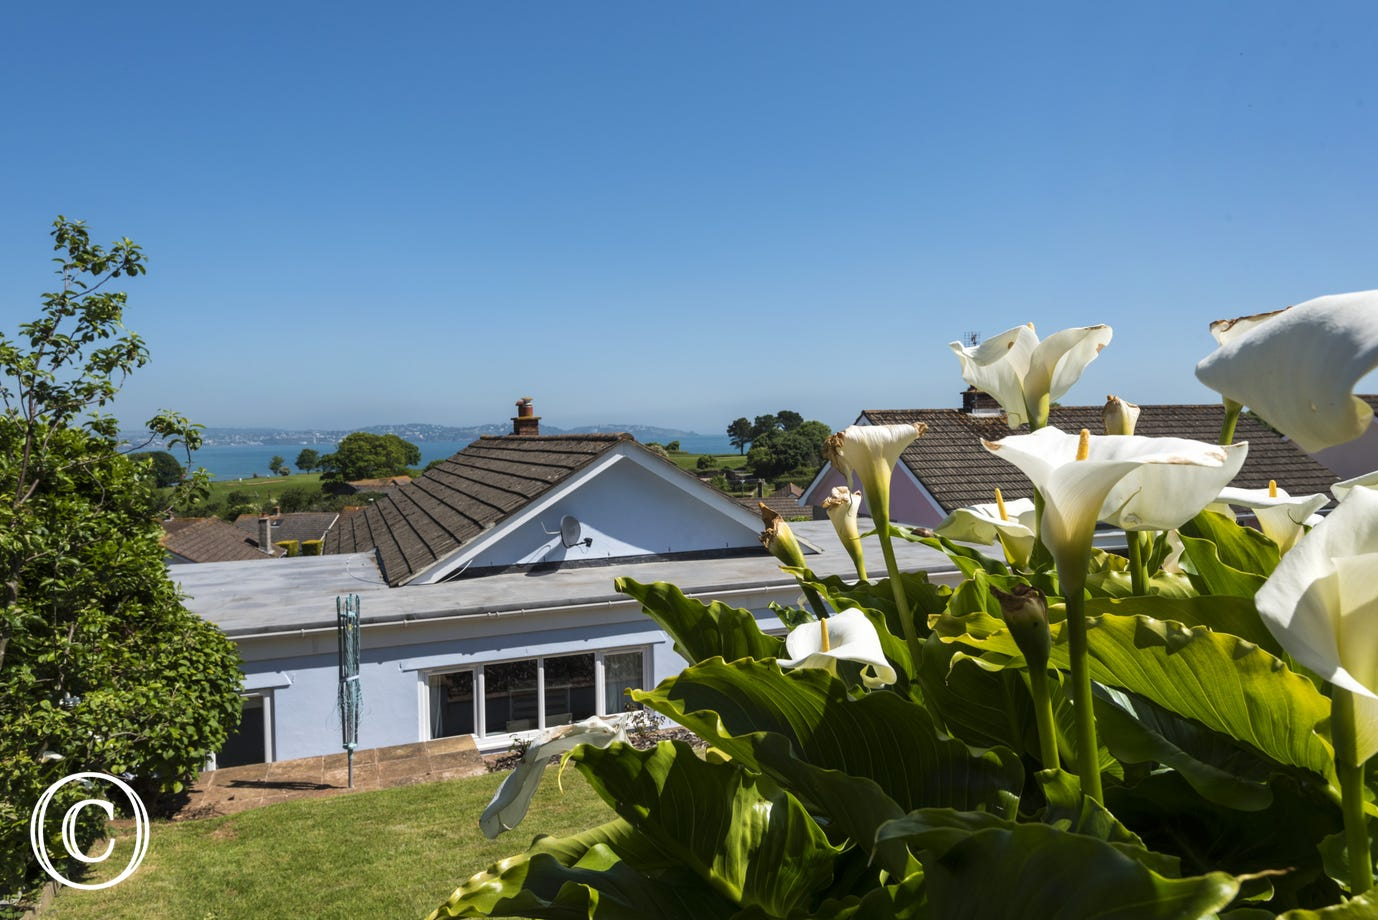 Sea Acres, Paignton - Garden overlooking Torbay